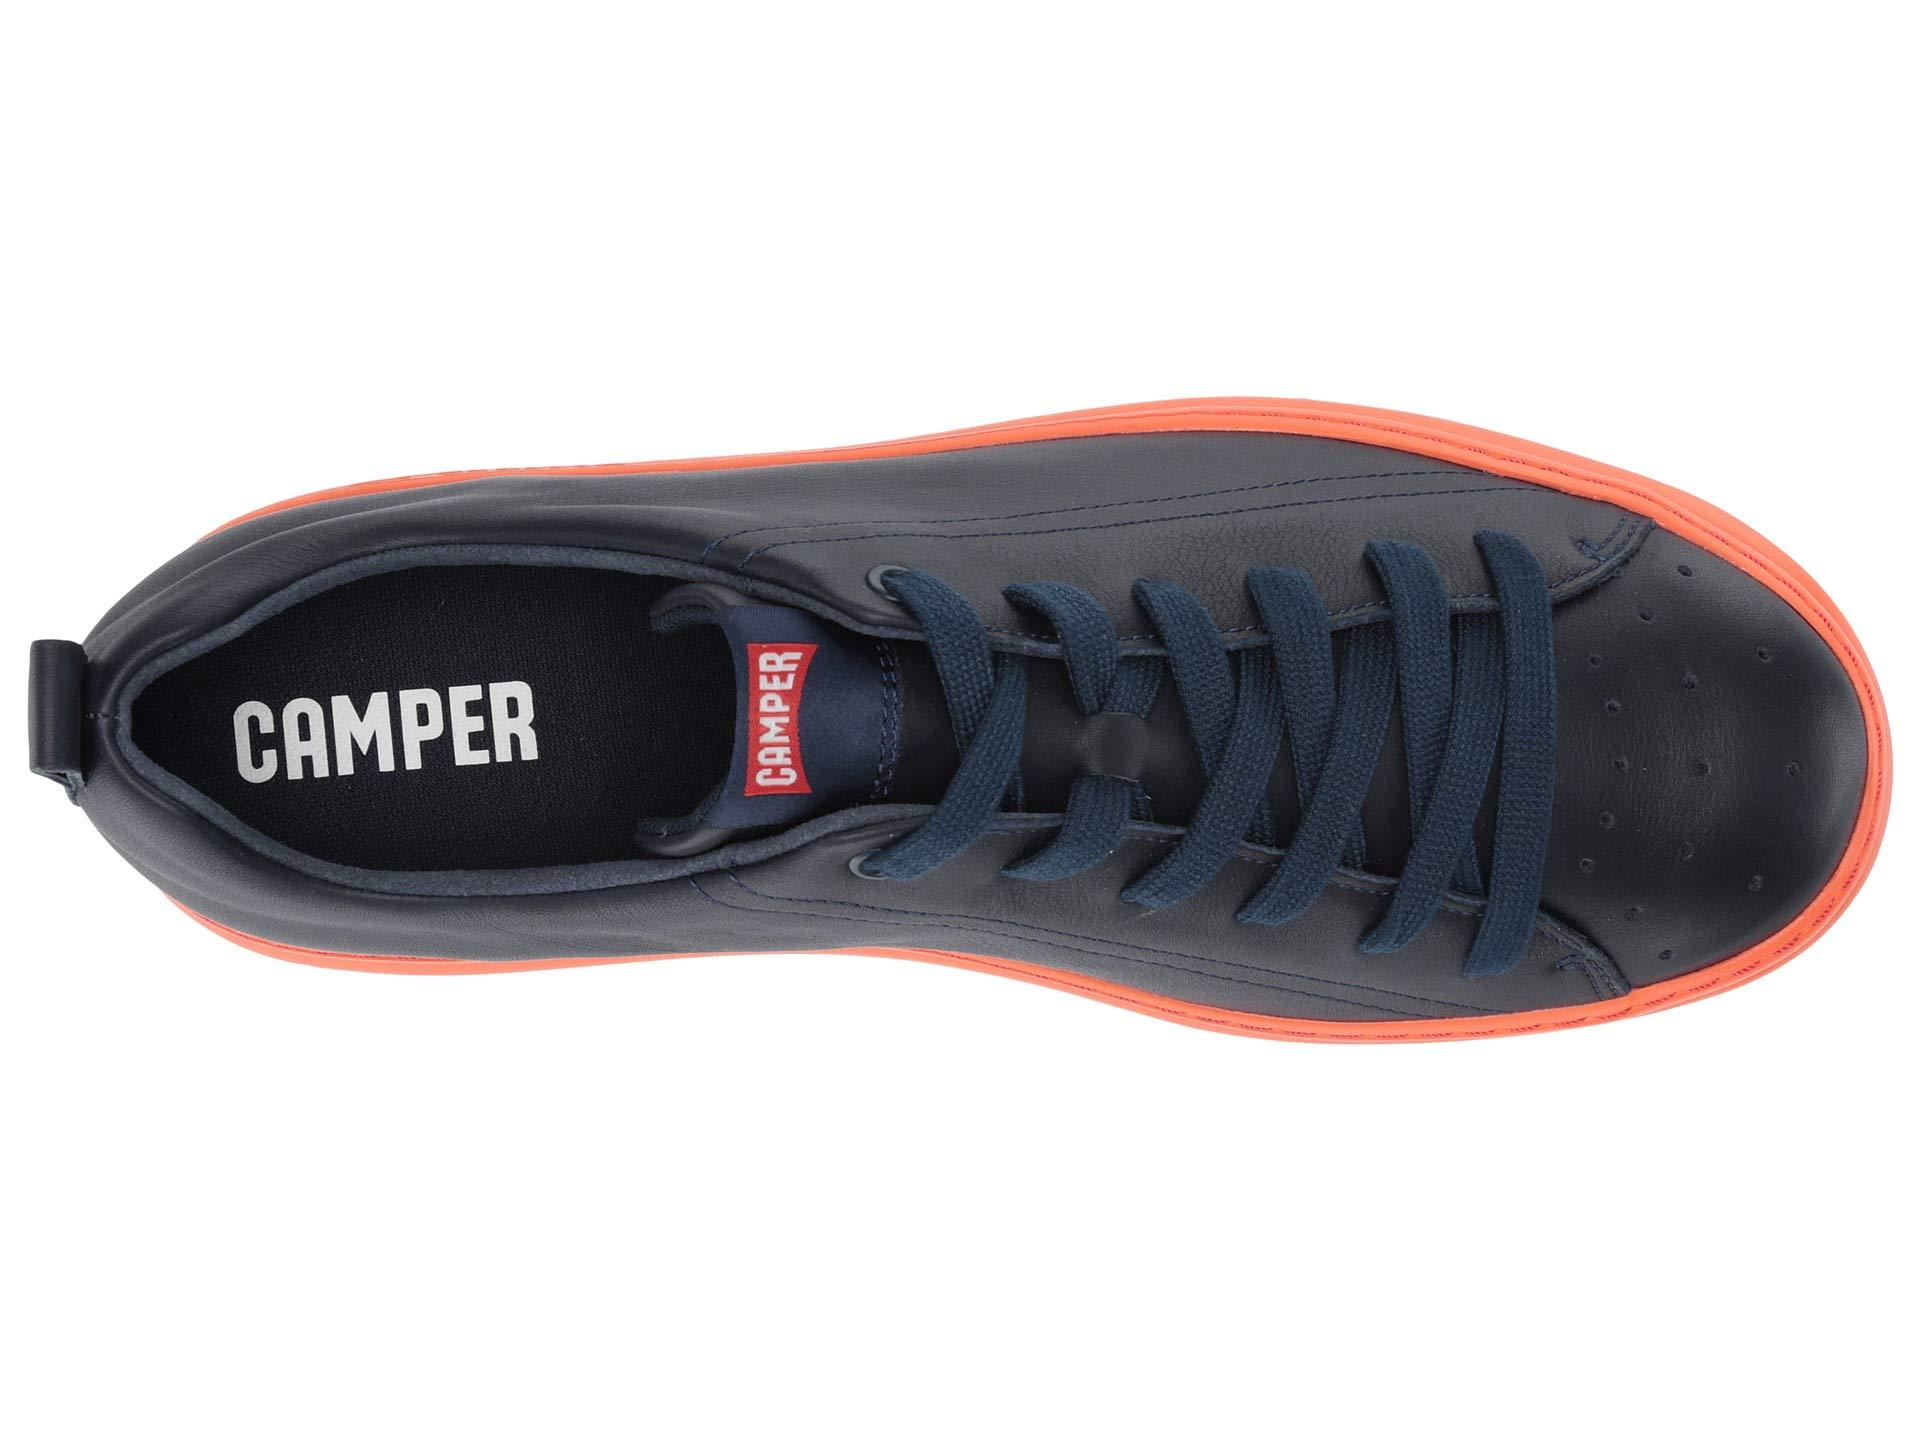 afa18a250d8168 Camper - Blue Runner Four - K100226 (navy) Men s Lace Up Casual Shoes for.  View fullscreen